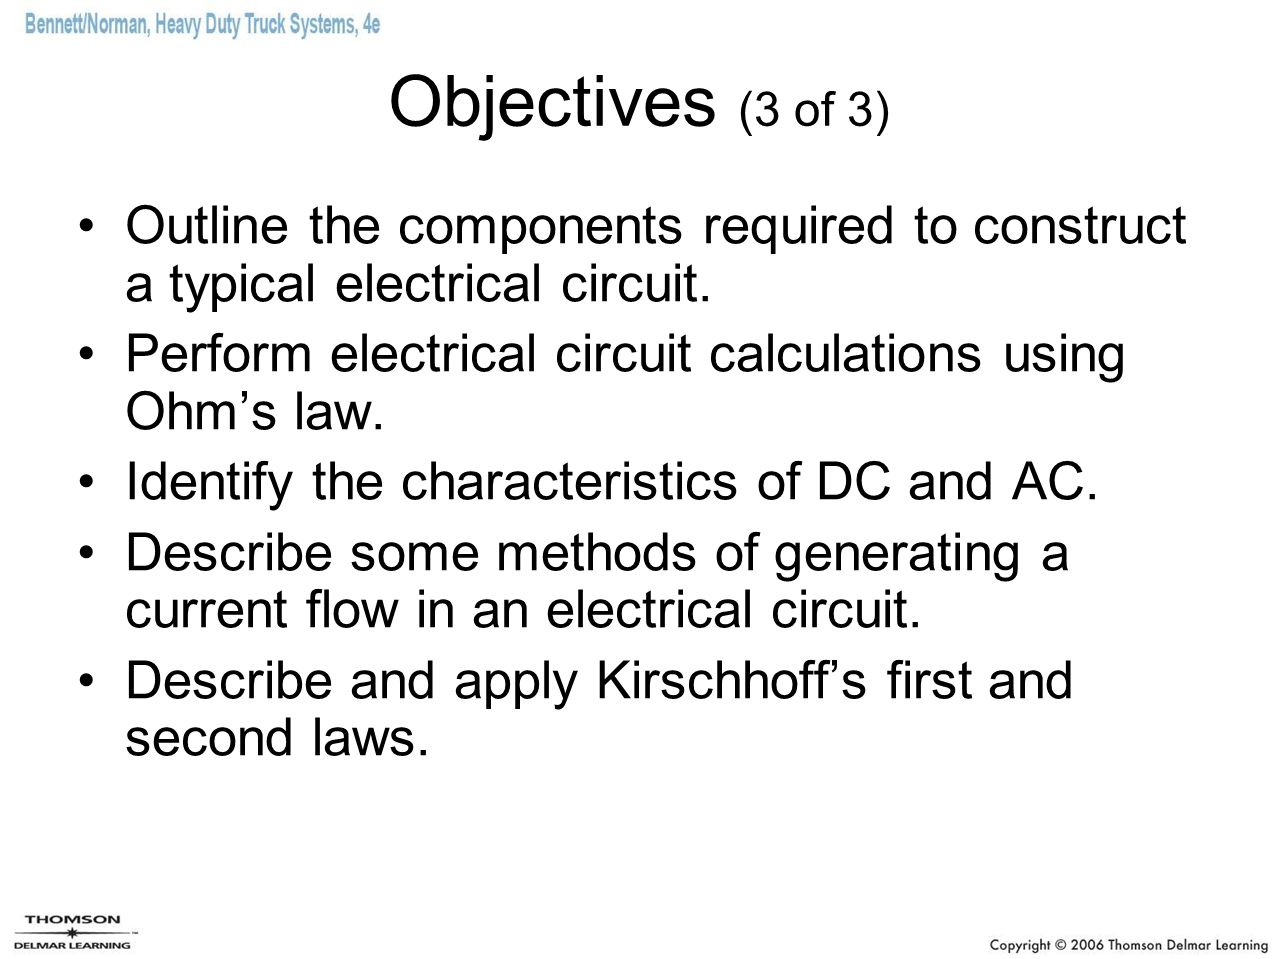 Fundamentals Of Electricity Ppt Video Online Download Electrical Circuit Requirements A Complete Is Objectives 3 Outline The Components Required To Construct Typical